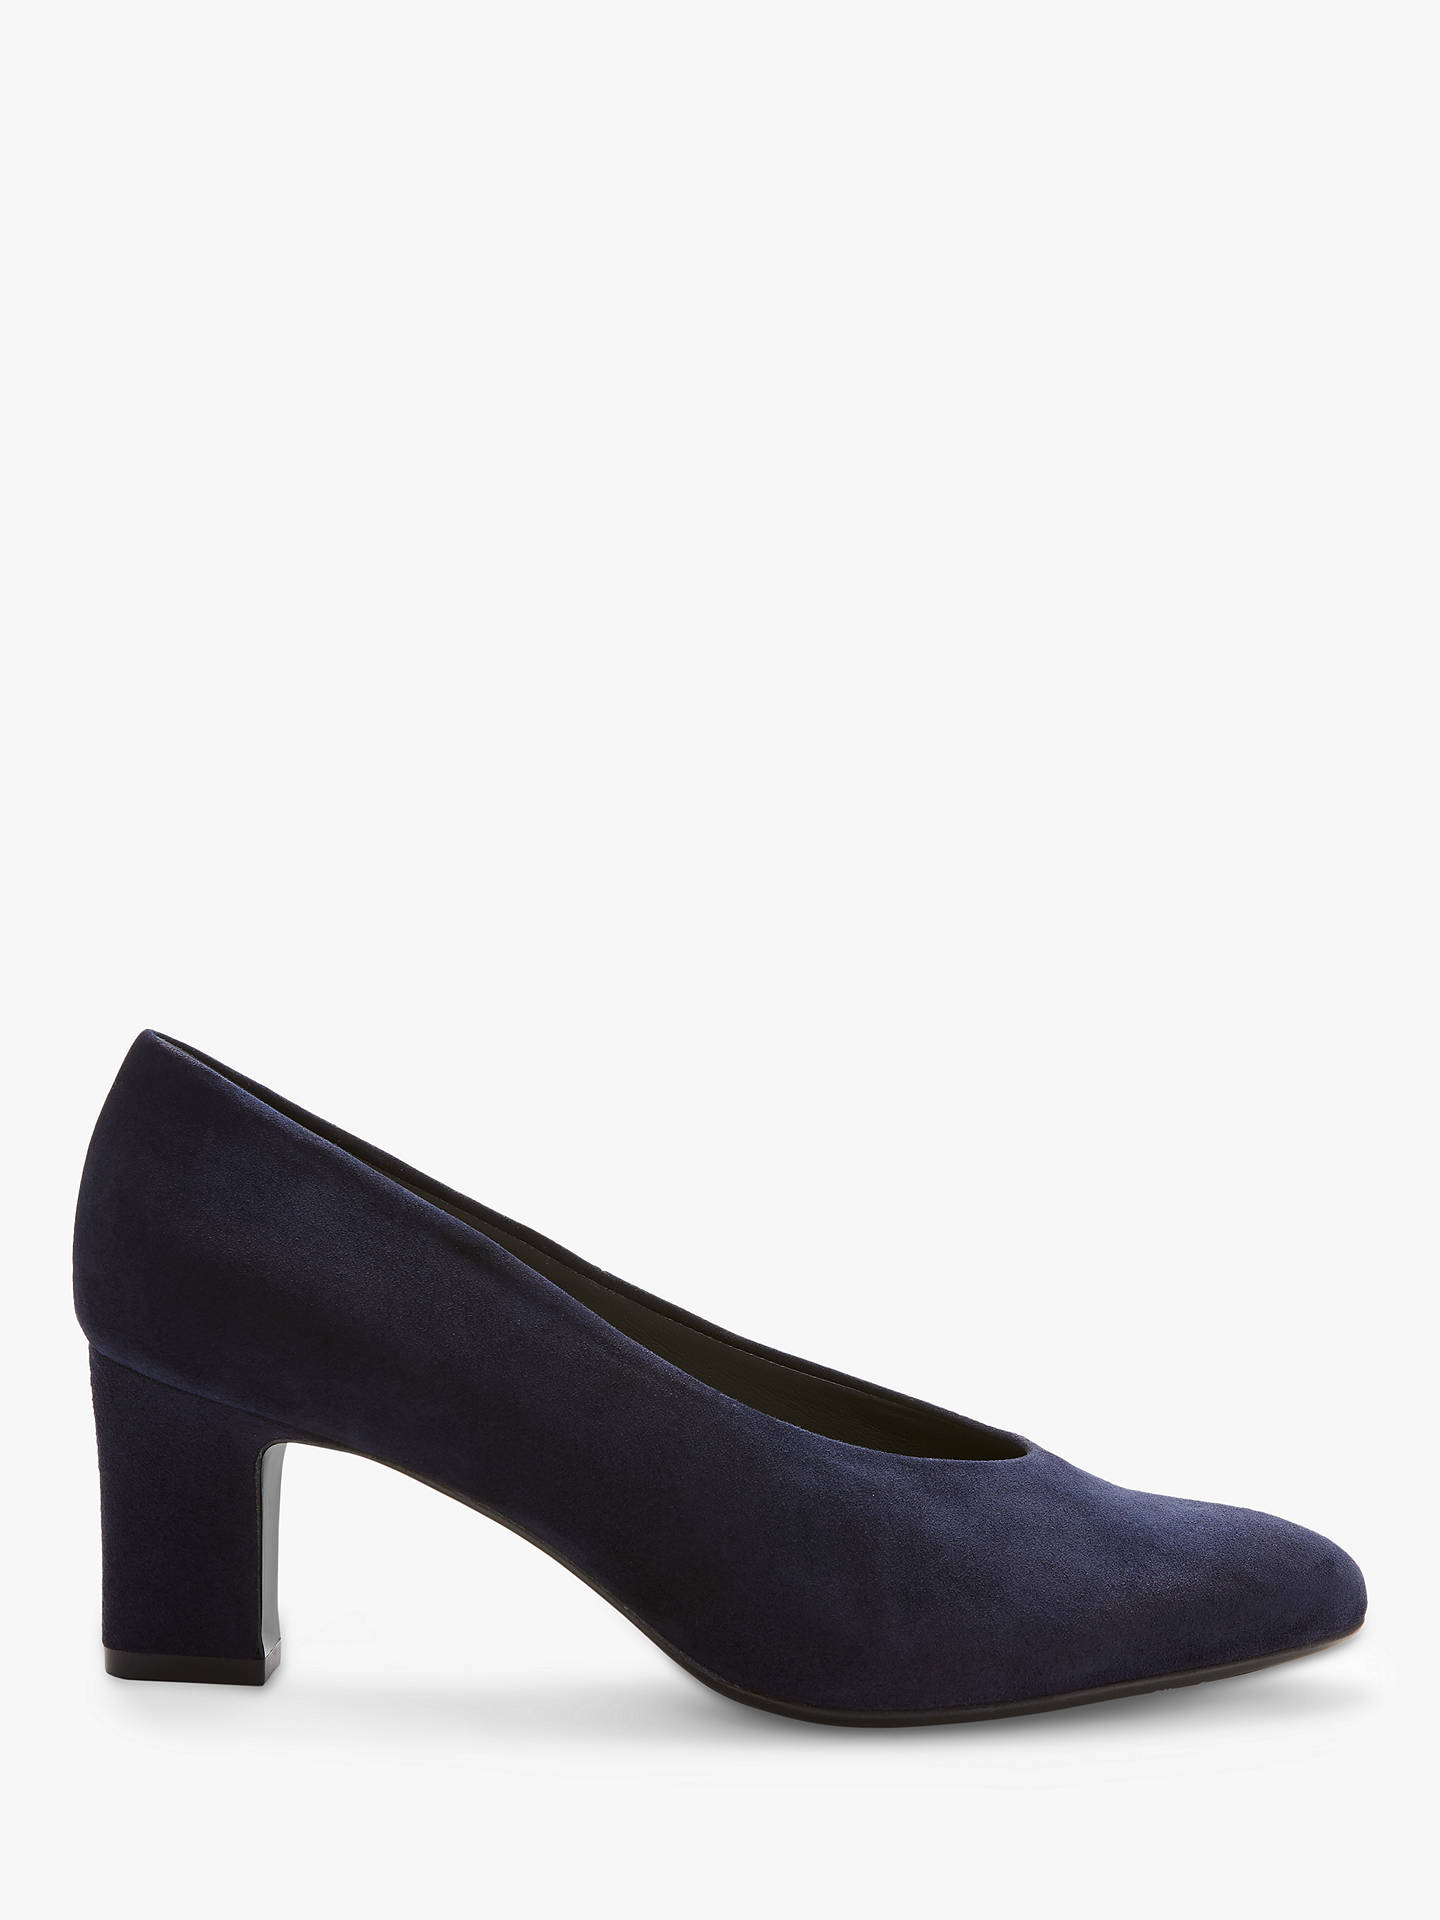 ShoesNavy Suede At Court Mahirella Block Heel Kaiser Peter John PTwOZulXik